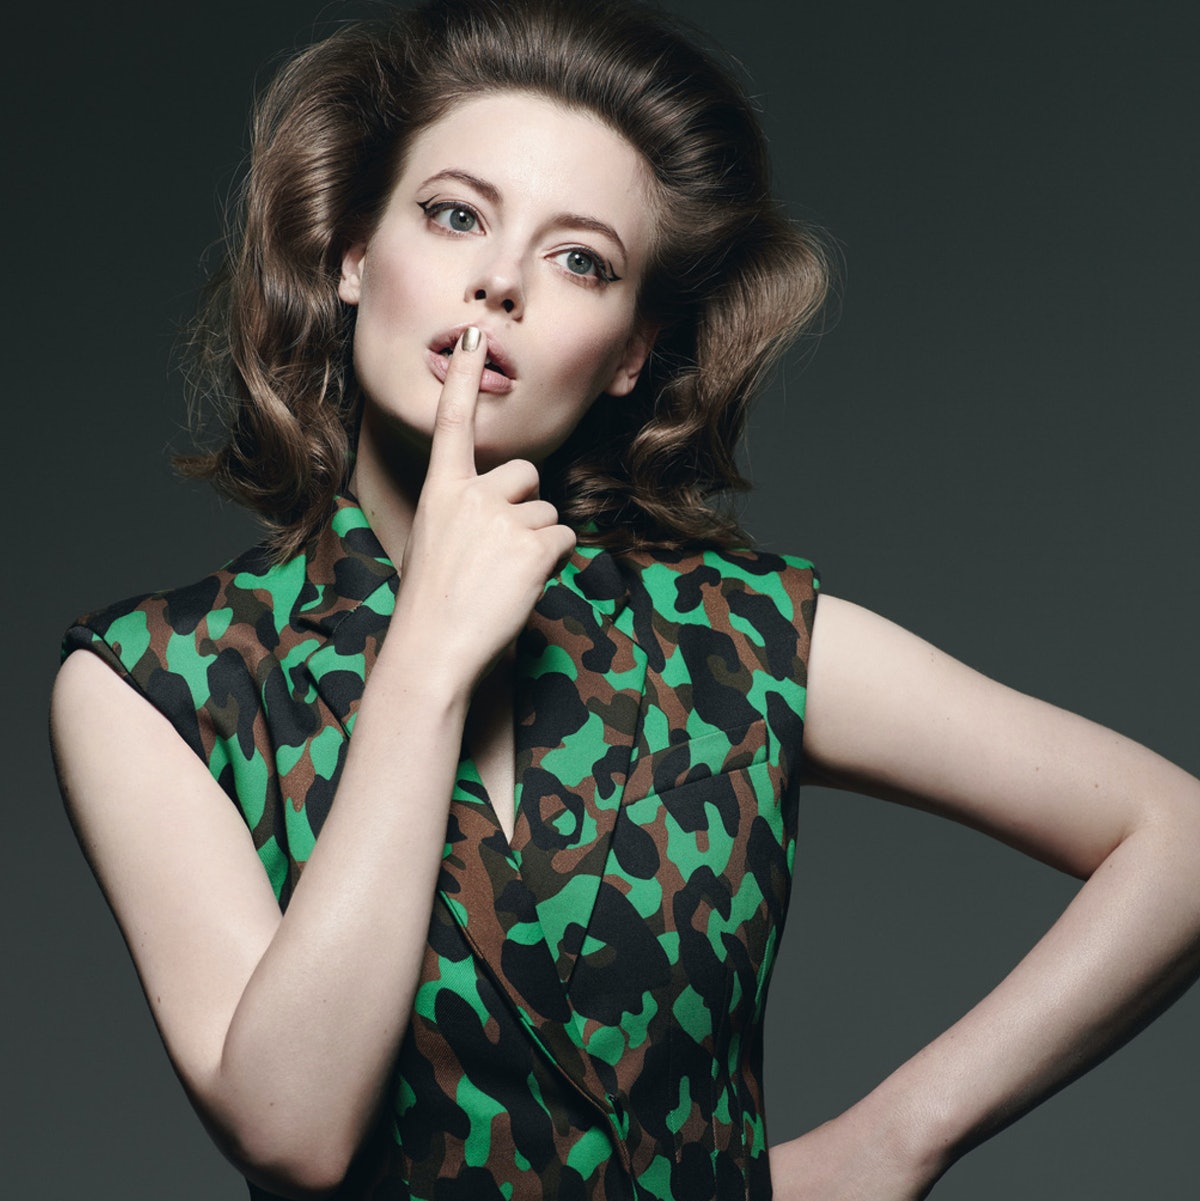 gillian jacobs. photo by mark segal, styled by sally lyndley